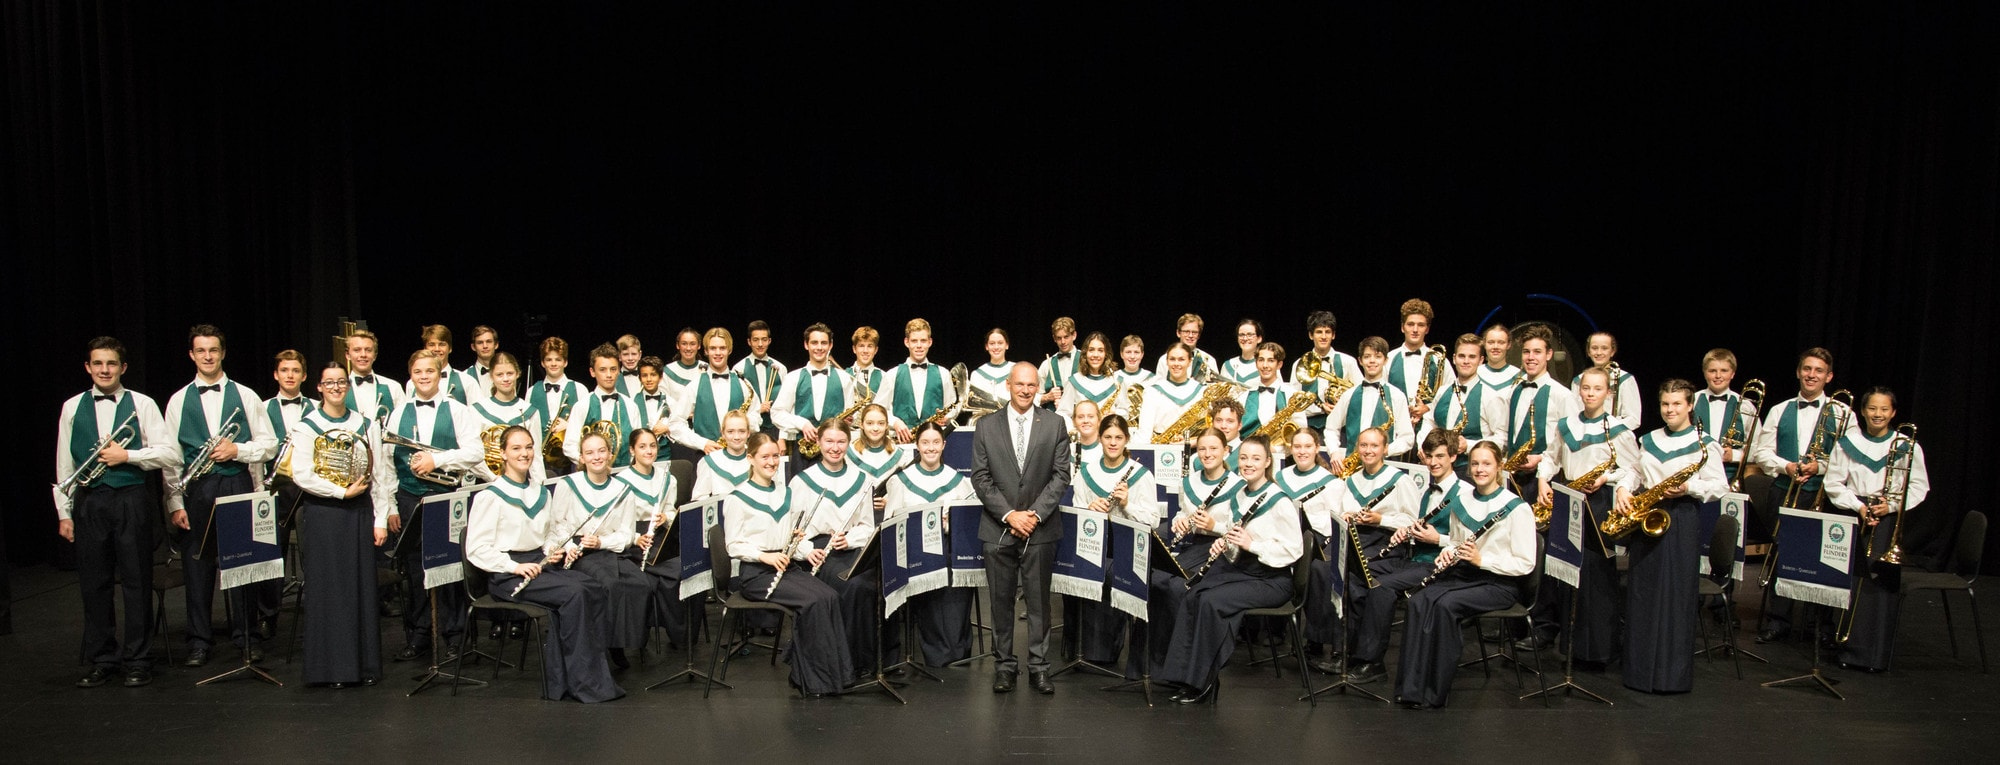 MFAC Sounds of Summer